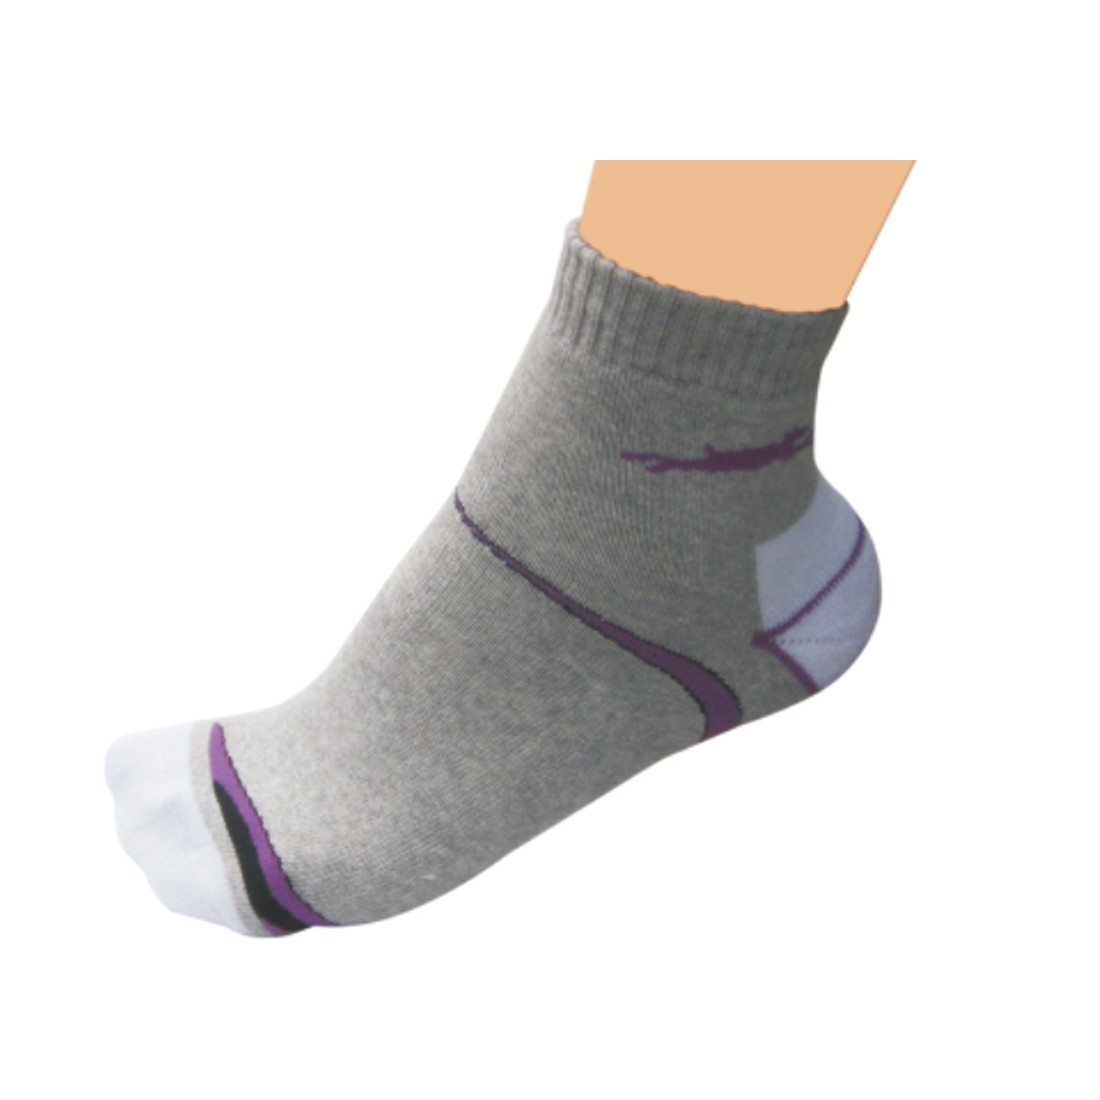 SOCKS (Light Grey/White/Purple/Black)